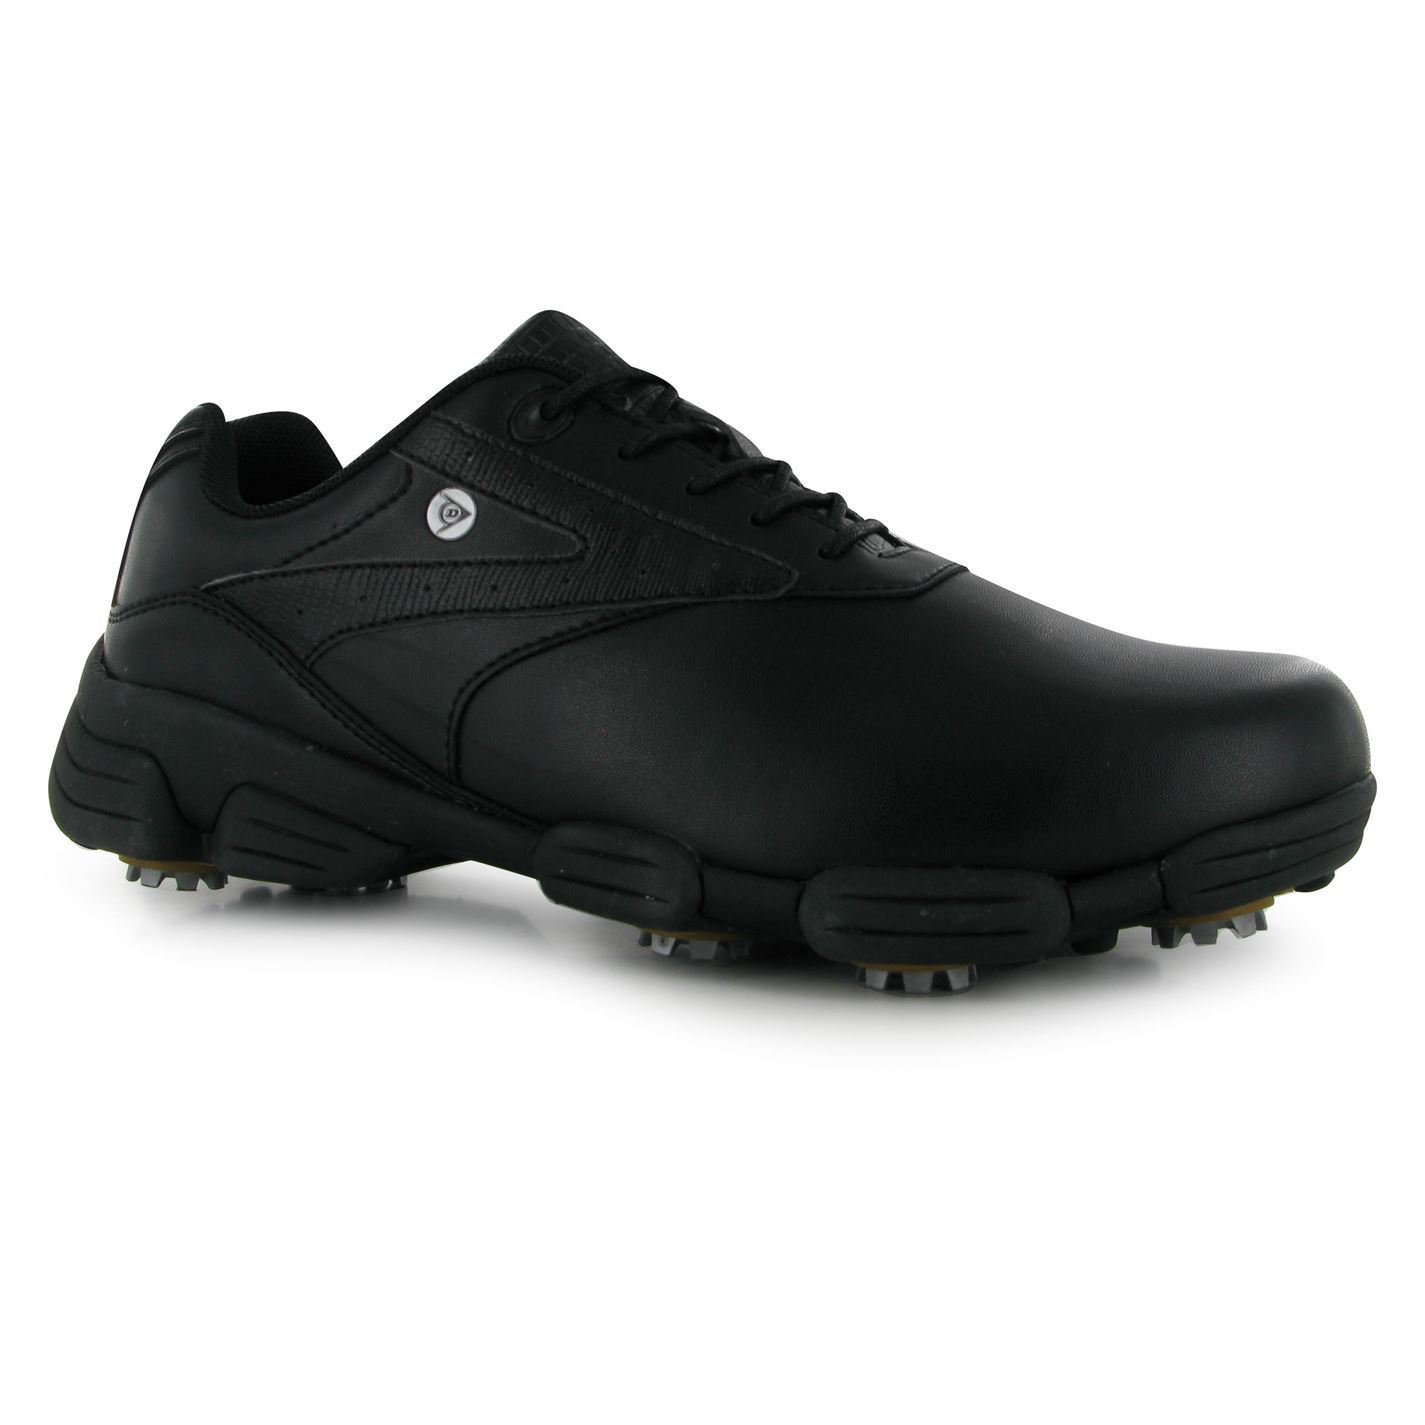 Dunlop Mens Biomimetic 100 Golf Shoes Spike Lace Up Sports Trainer Footwear